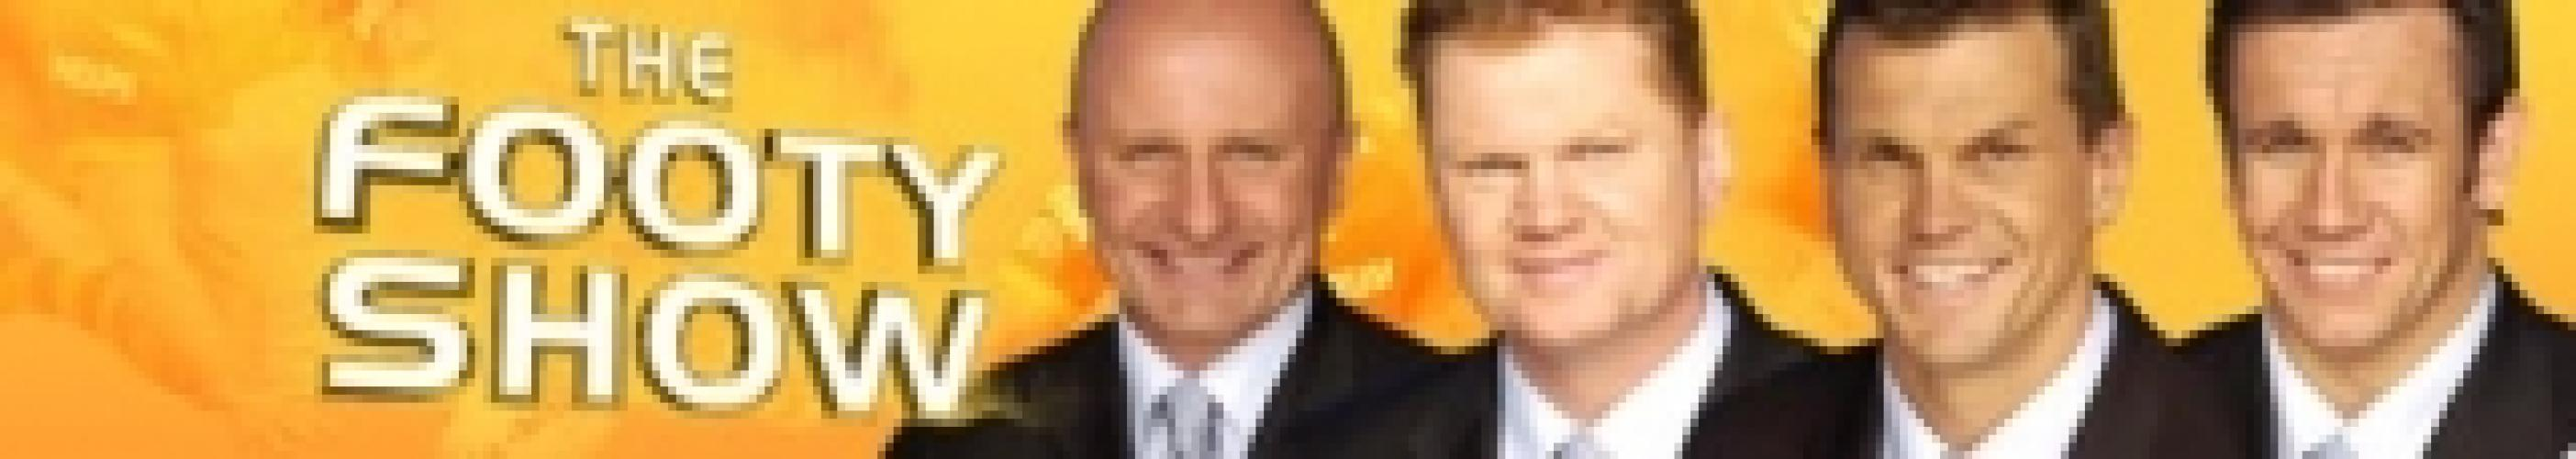 The Footy Show (AFL) next episode air date poster